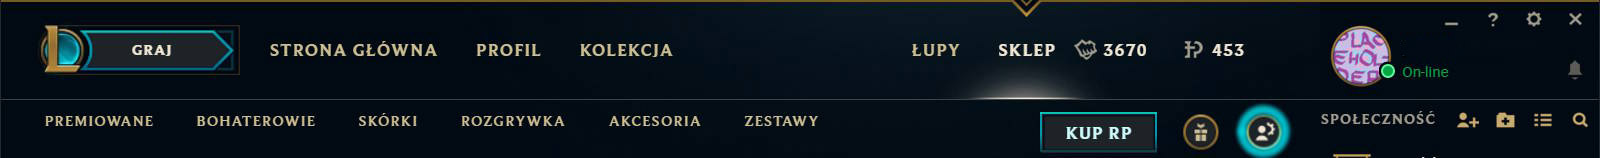 Summoner-Name-FAQ_PL_1.jpg